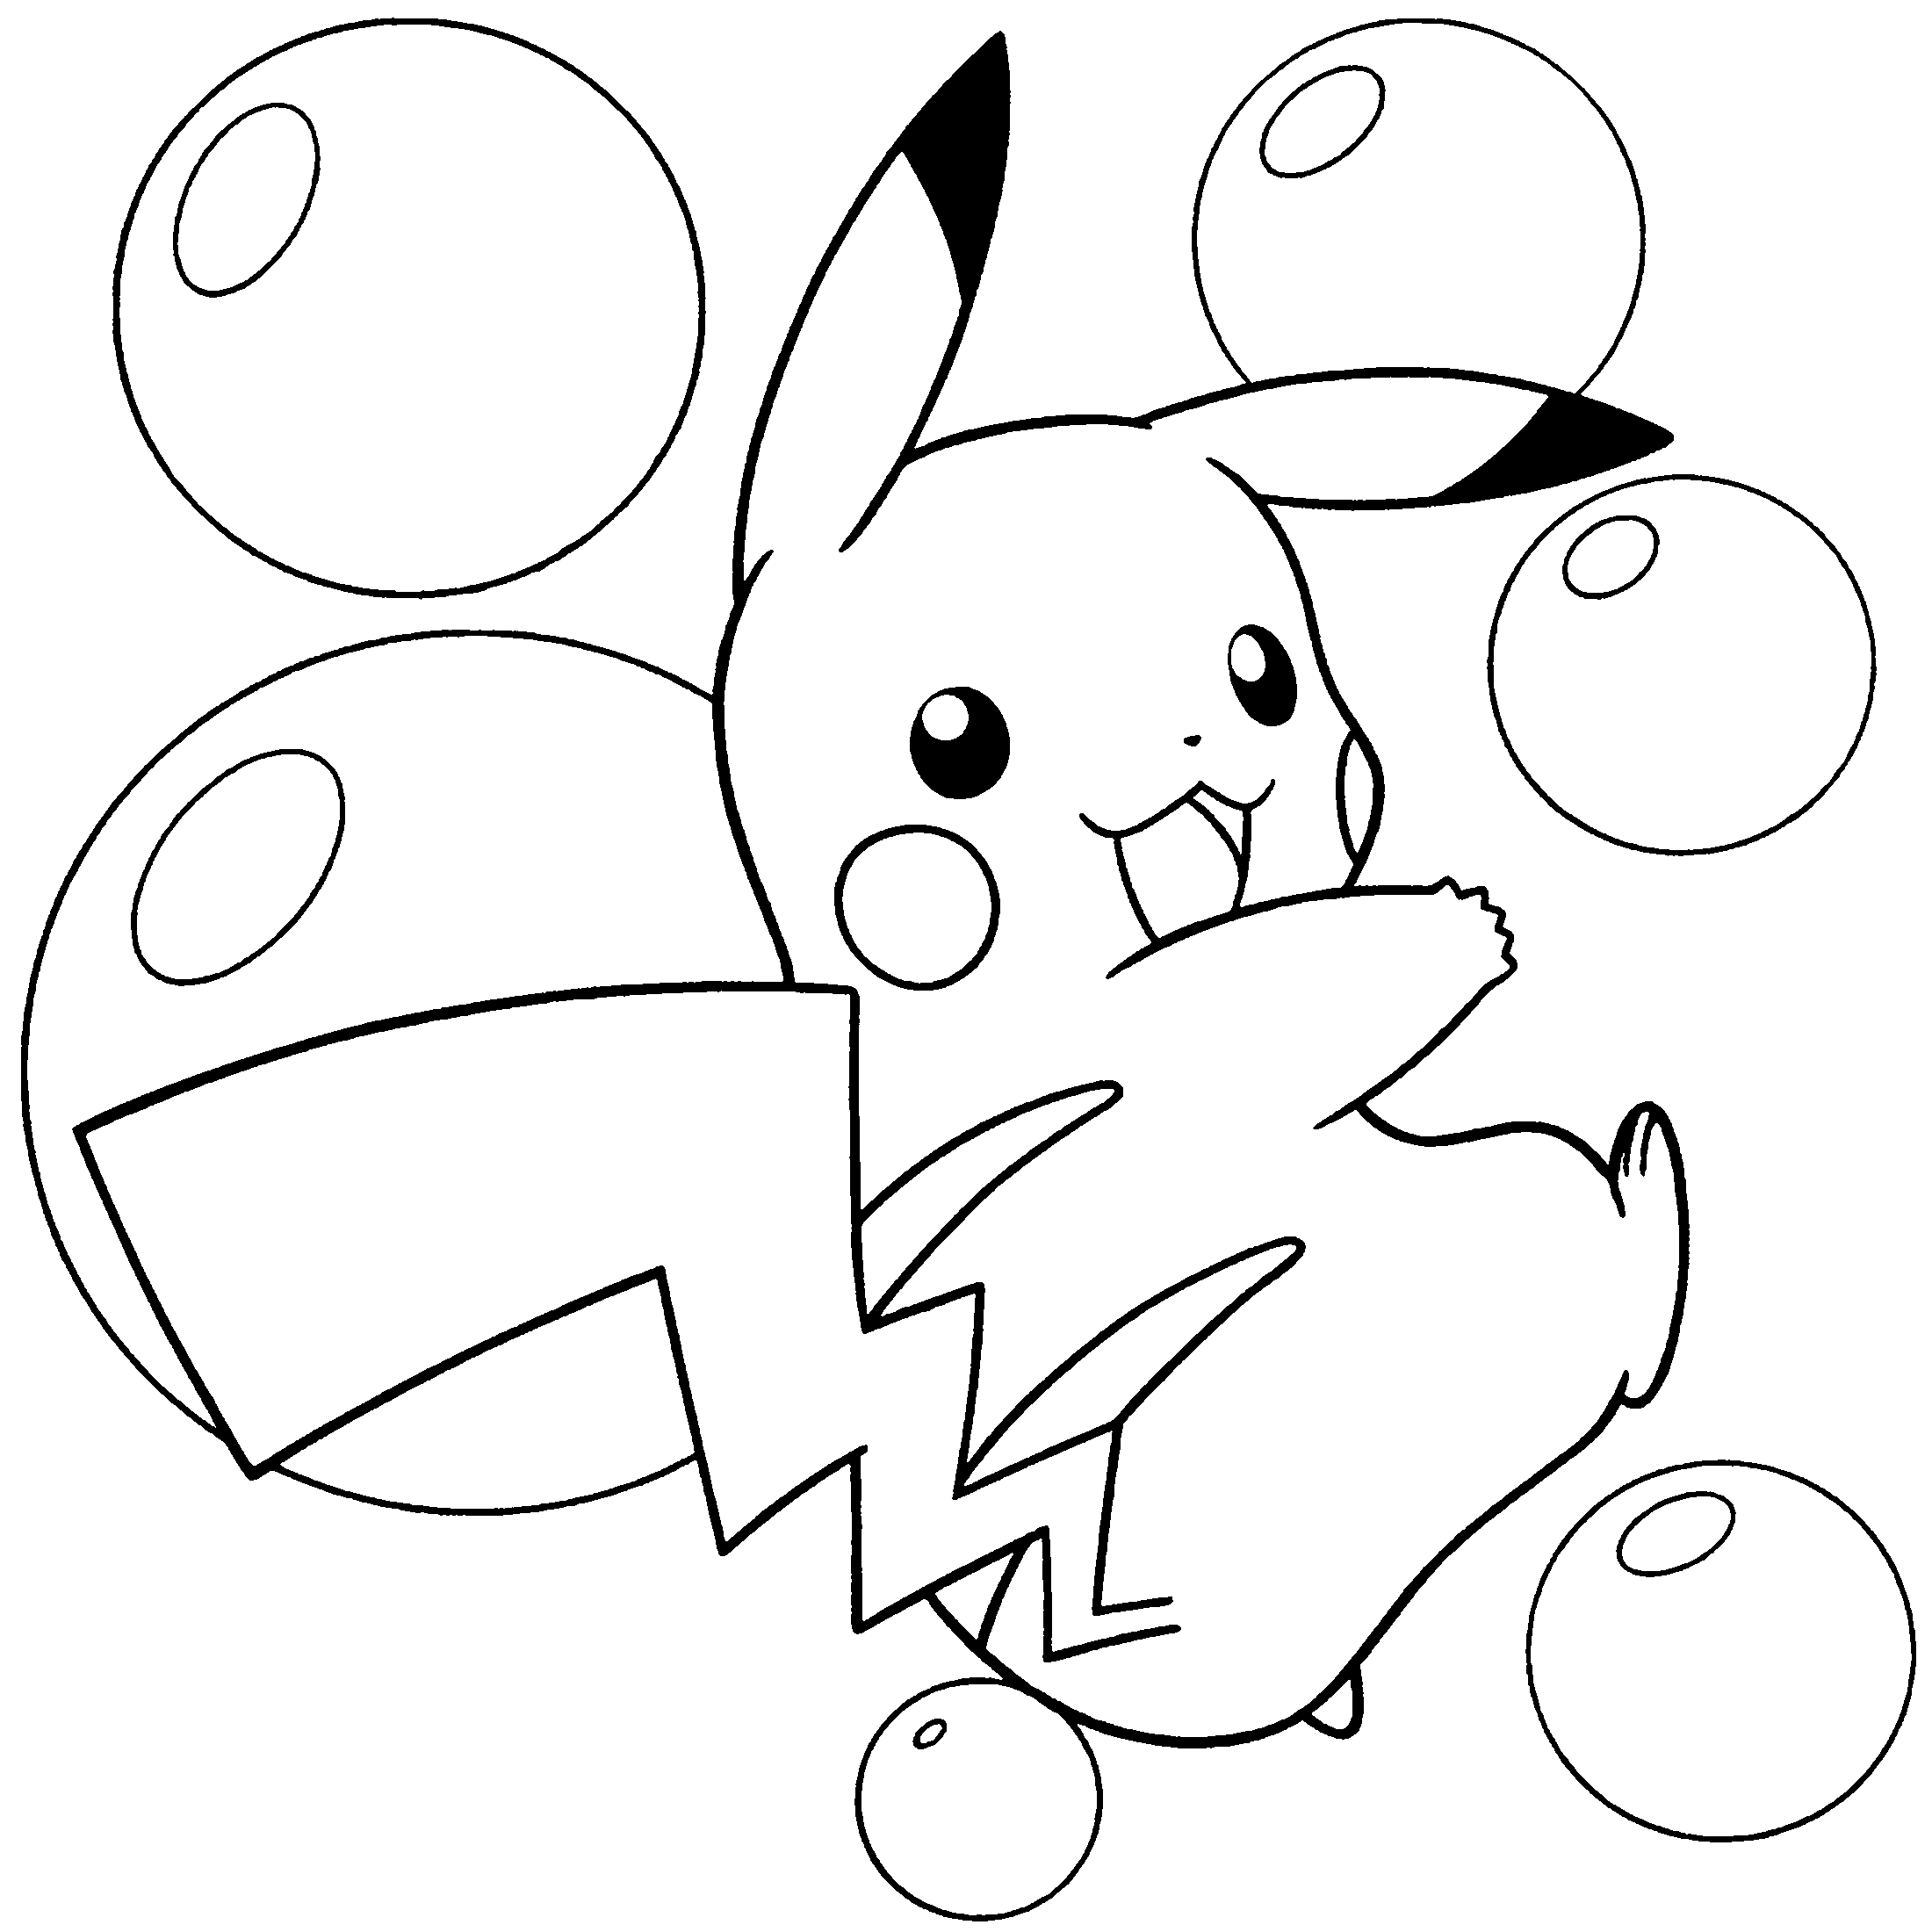 Ausmalbilder Pokemon Glumanda : Pokemon Diamond Pearl Coloring Pages 116 Png 2200 2200 Coloring